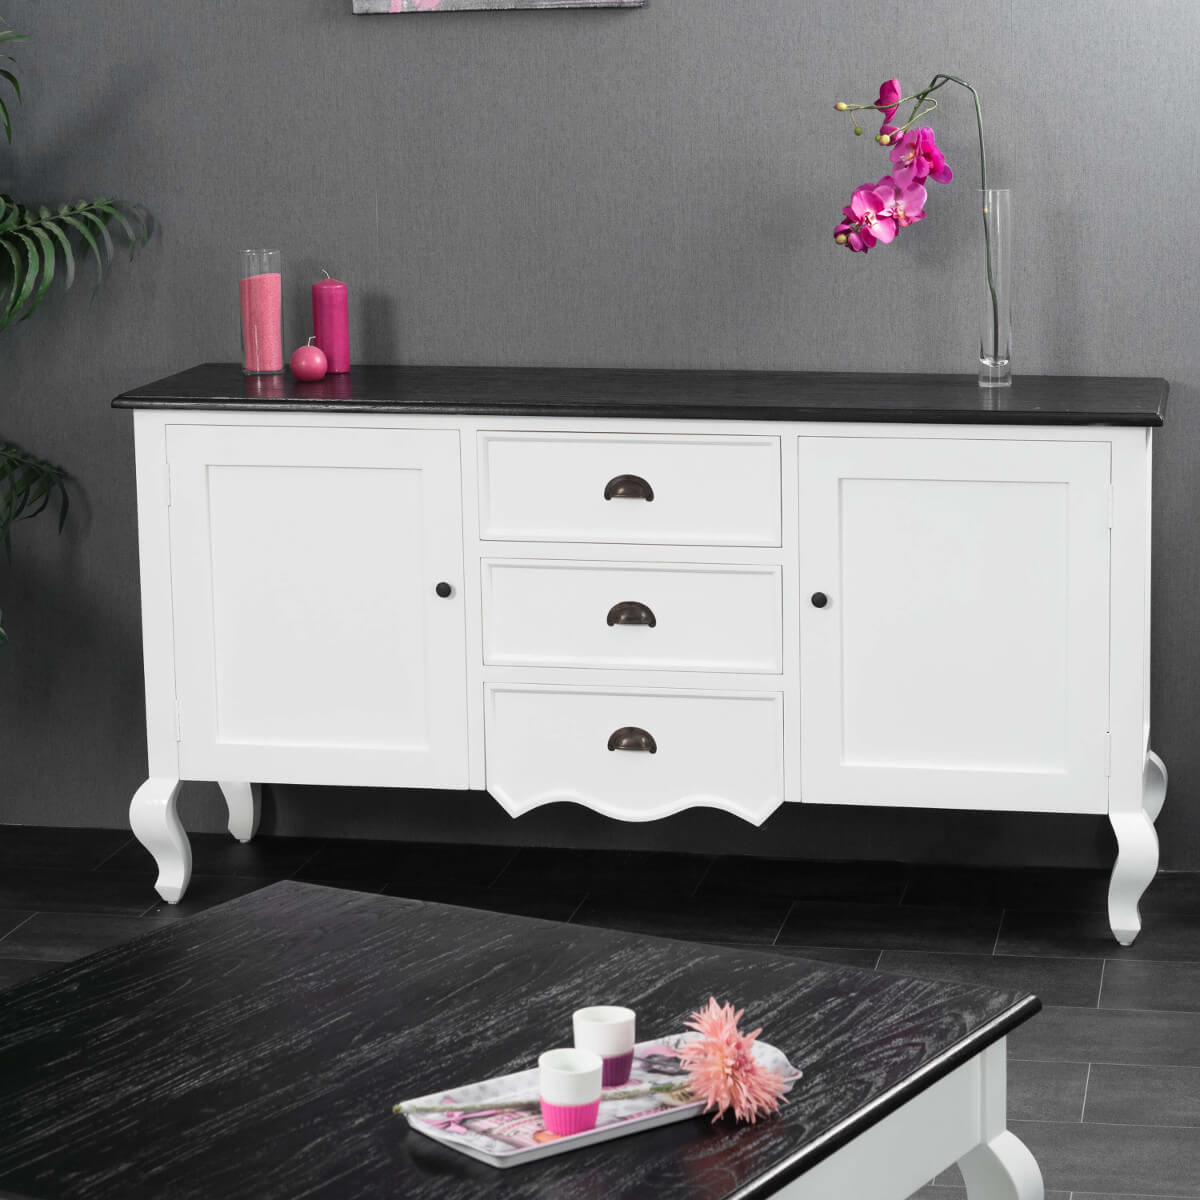 Buffet de salon en bois dacajou et de pin massif  Idao rectangle blanc  naturel L  160 cm